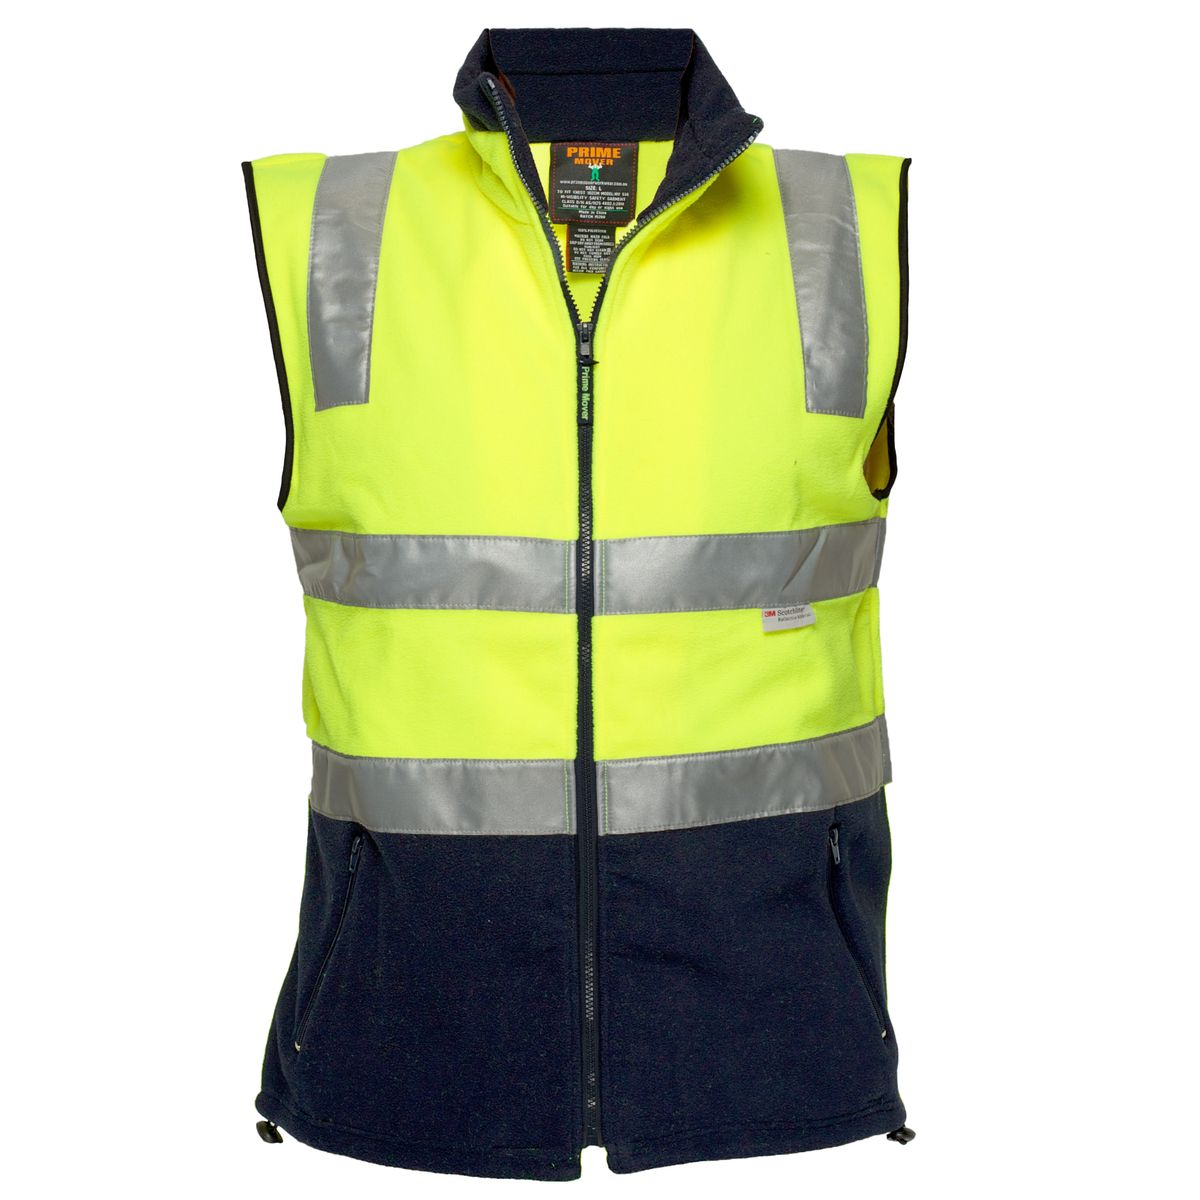 2 Tone Polar Fleece Vest Shoulder Taped - DISCONTINUED